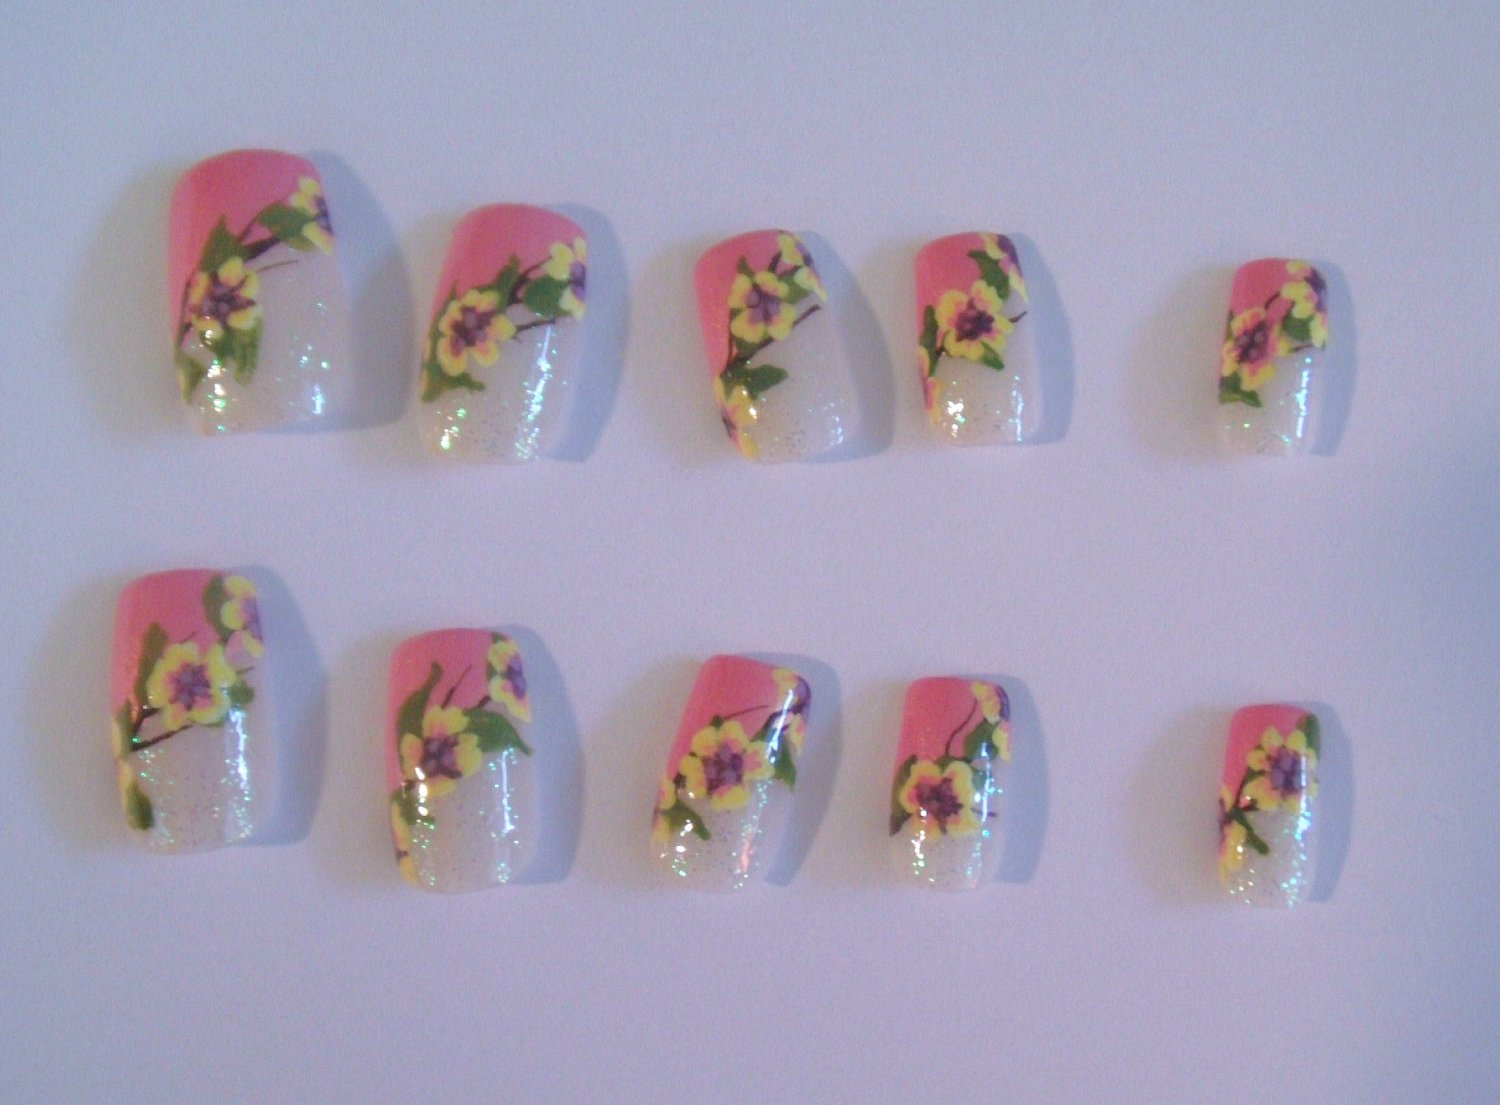 SALE! Daisy Chain Nail Tips